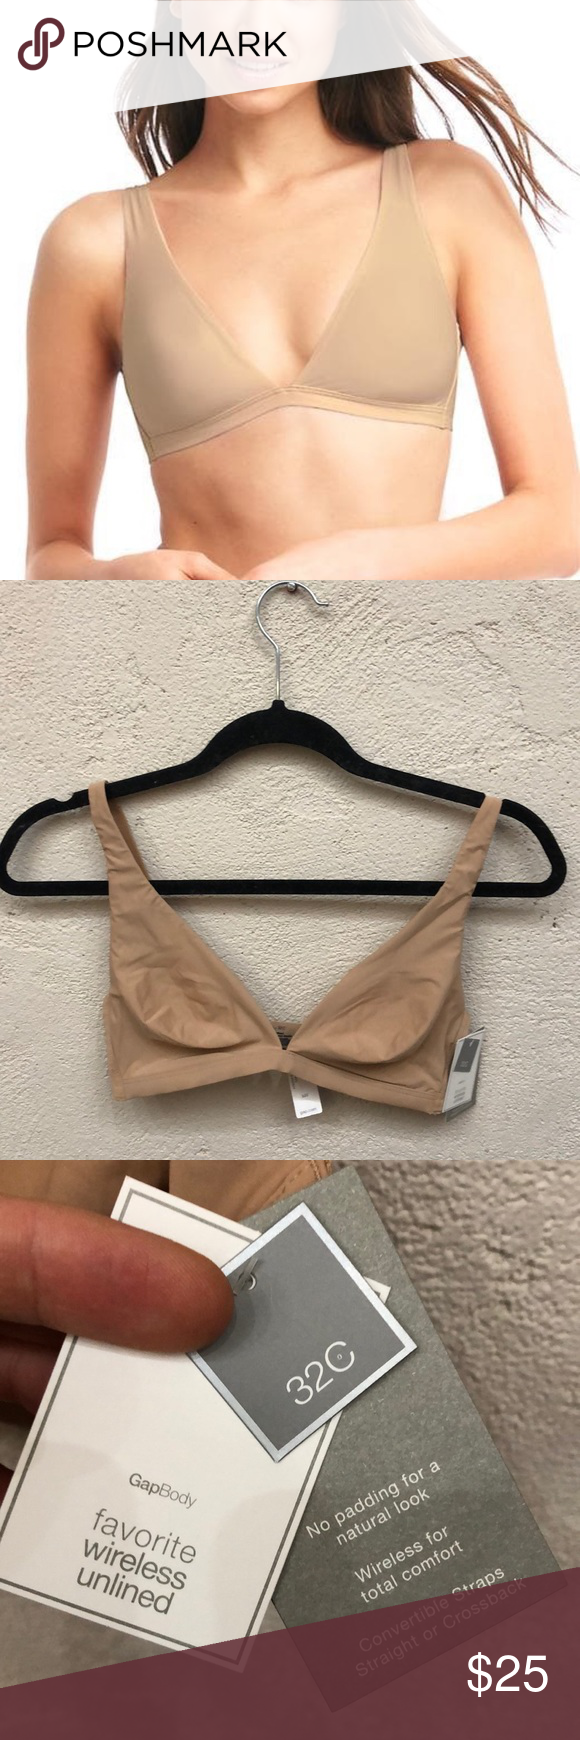 896baad19e Gap body wireless unlined nude bra 32C new Brand new with tags attached.  Unlined Nude bra. GAP Intimates   Sleepwear Bras